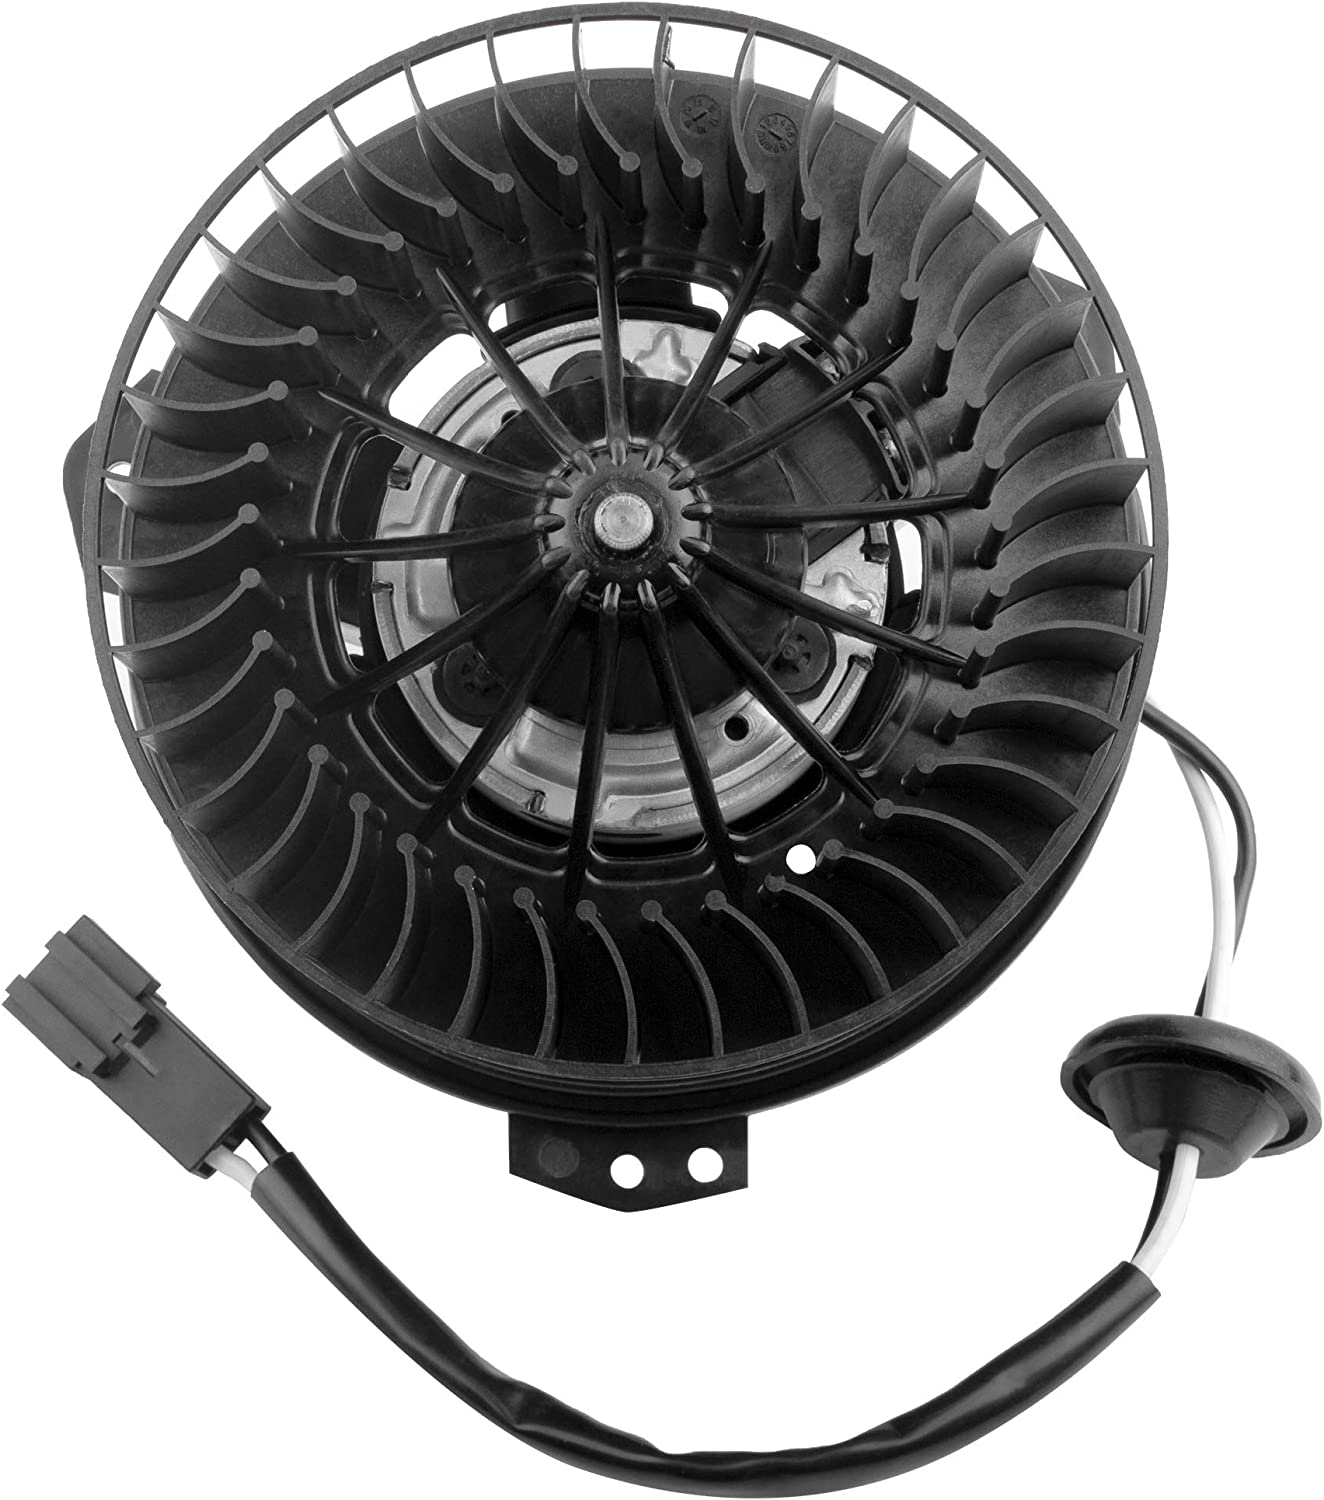 MYSMOT 700070 4885475AC Blower Motor Fan Assembly Compatible with 01-03 Chrysler Voyager, 01-07 Chrysler Town & Country, 04-08 Chrysler Pacifica, 01-07 Dodge Caravan & Dodge Grand Caravan